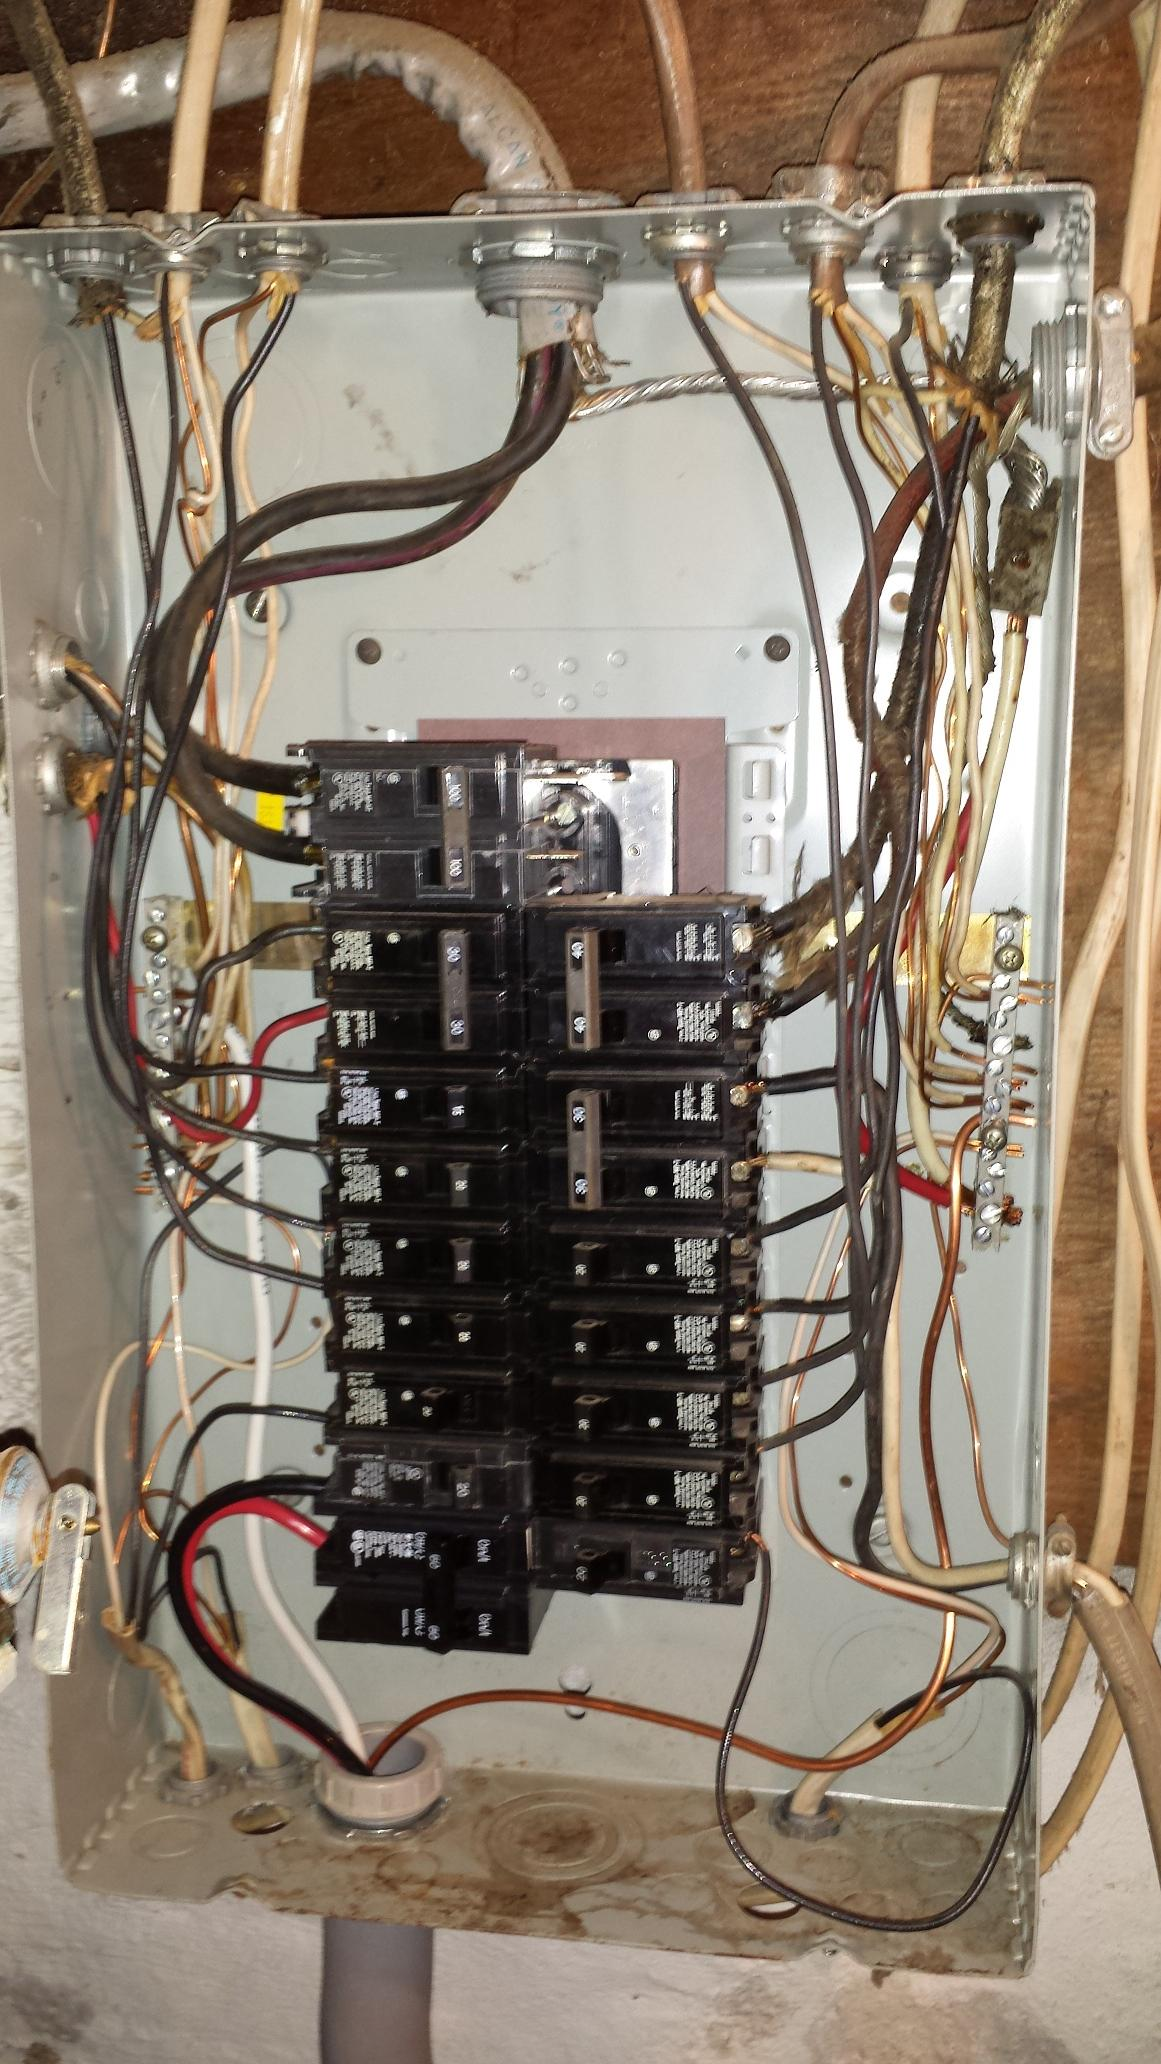 Groovy Electrical Panel Is The Wiring In This Subpanel Correct Home Wiring Cloud Rineaidewilluminateatxorg